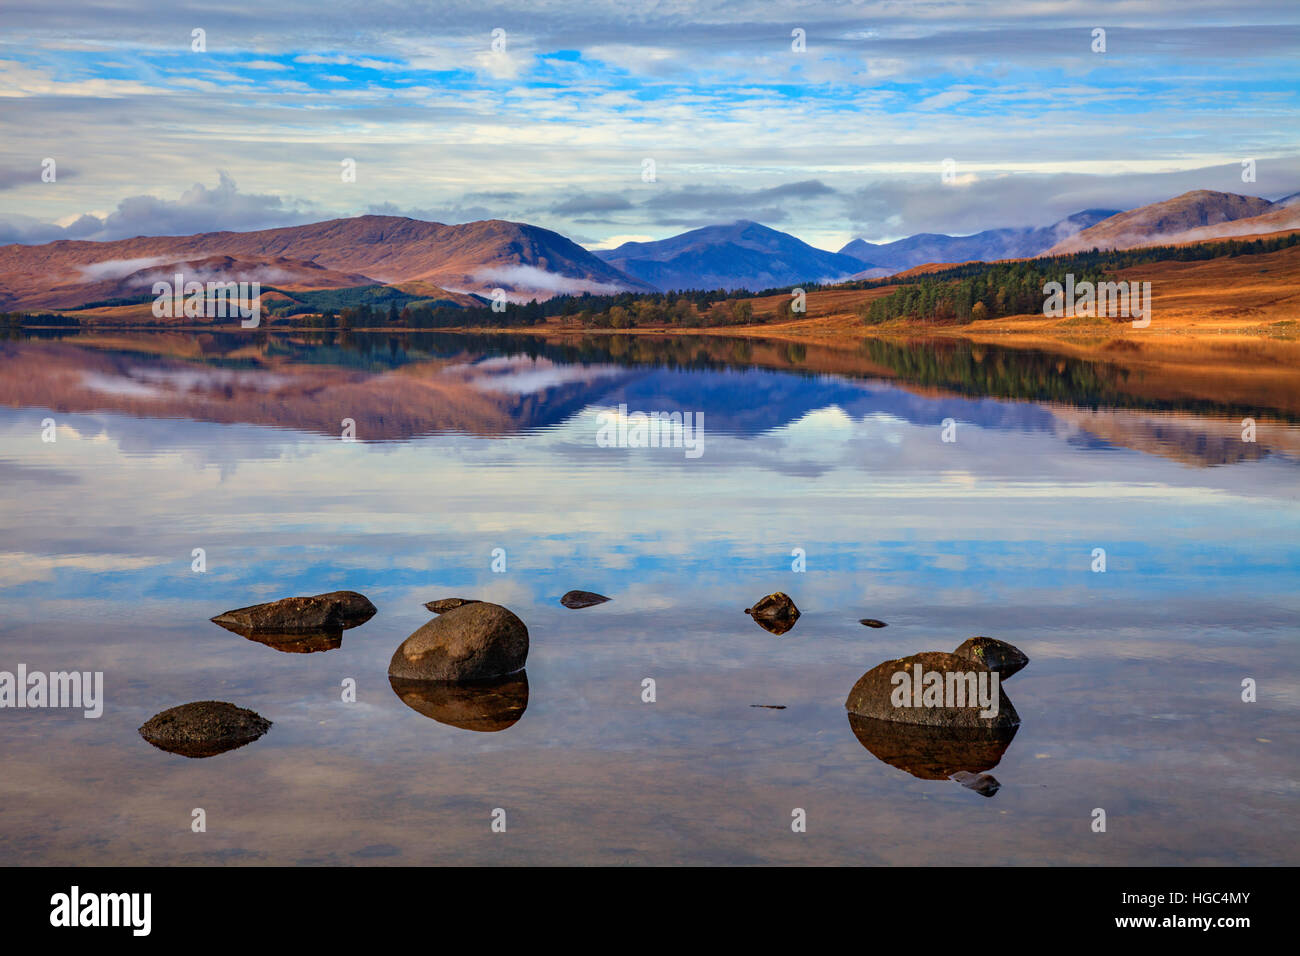 Reflections in Loch Tulla in The Scottish Highlands. - Stock Image